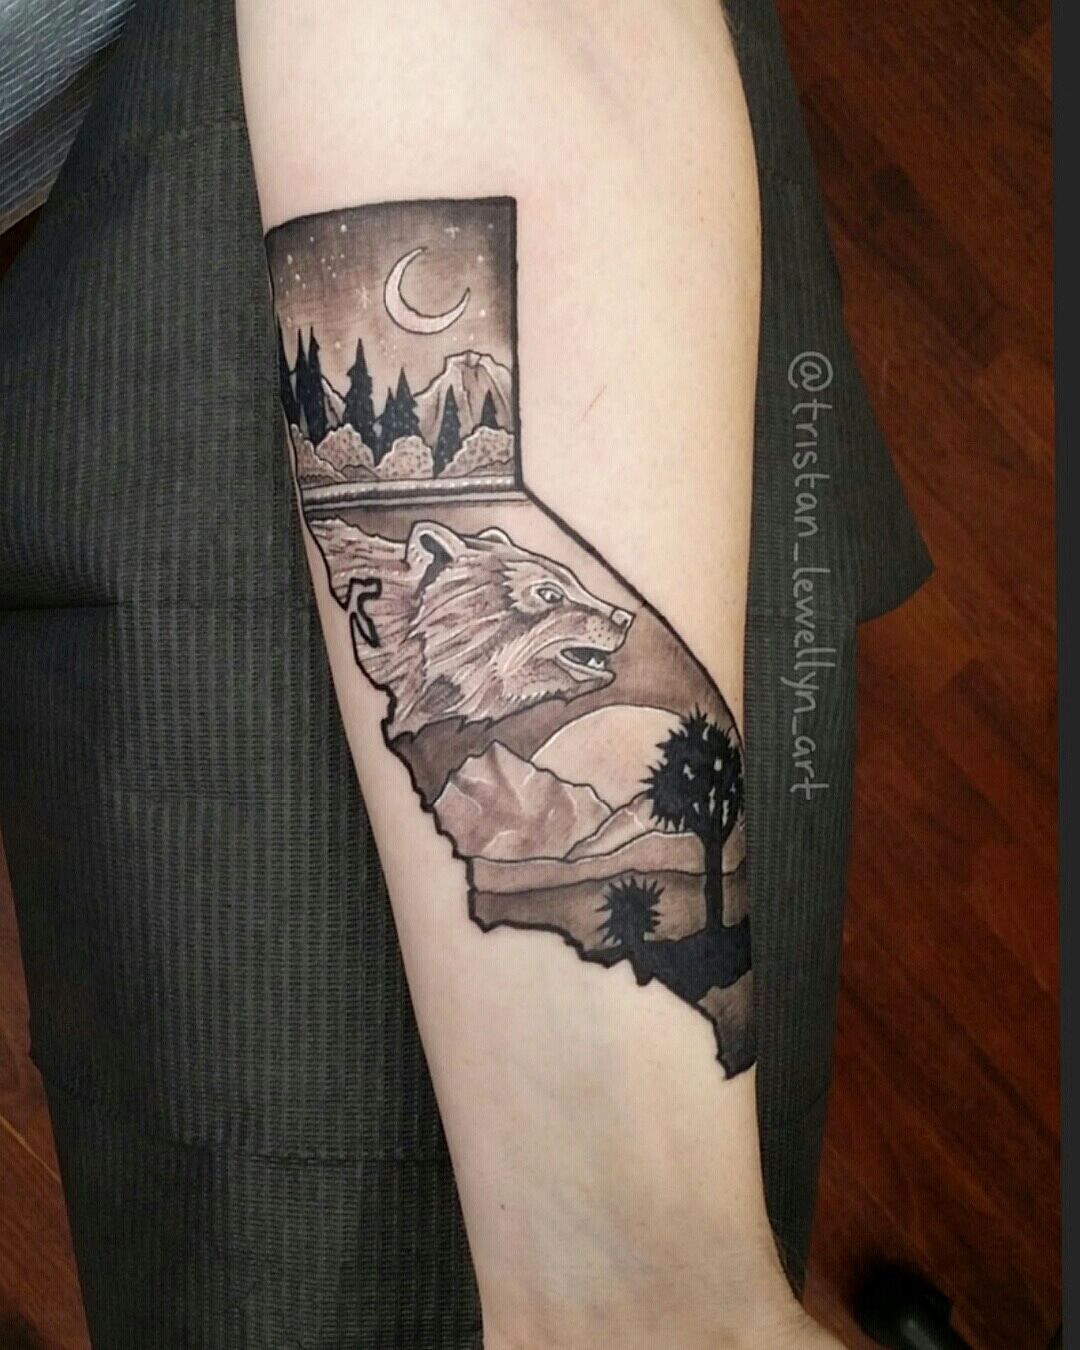 California Tattoo In Blackwork Style With Landscape